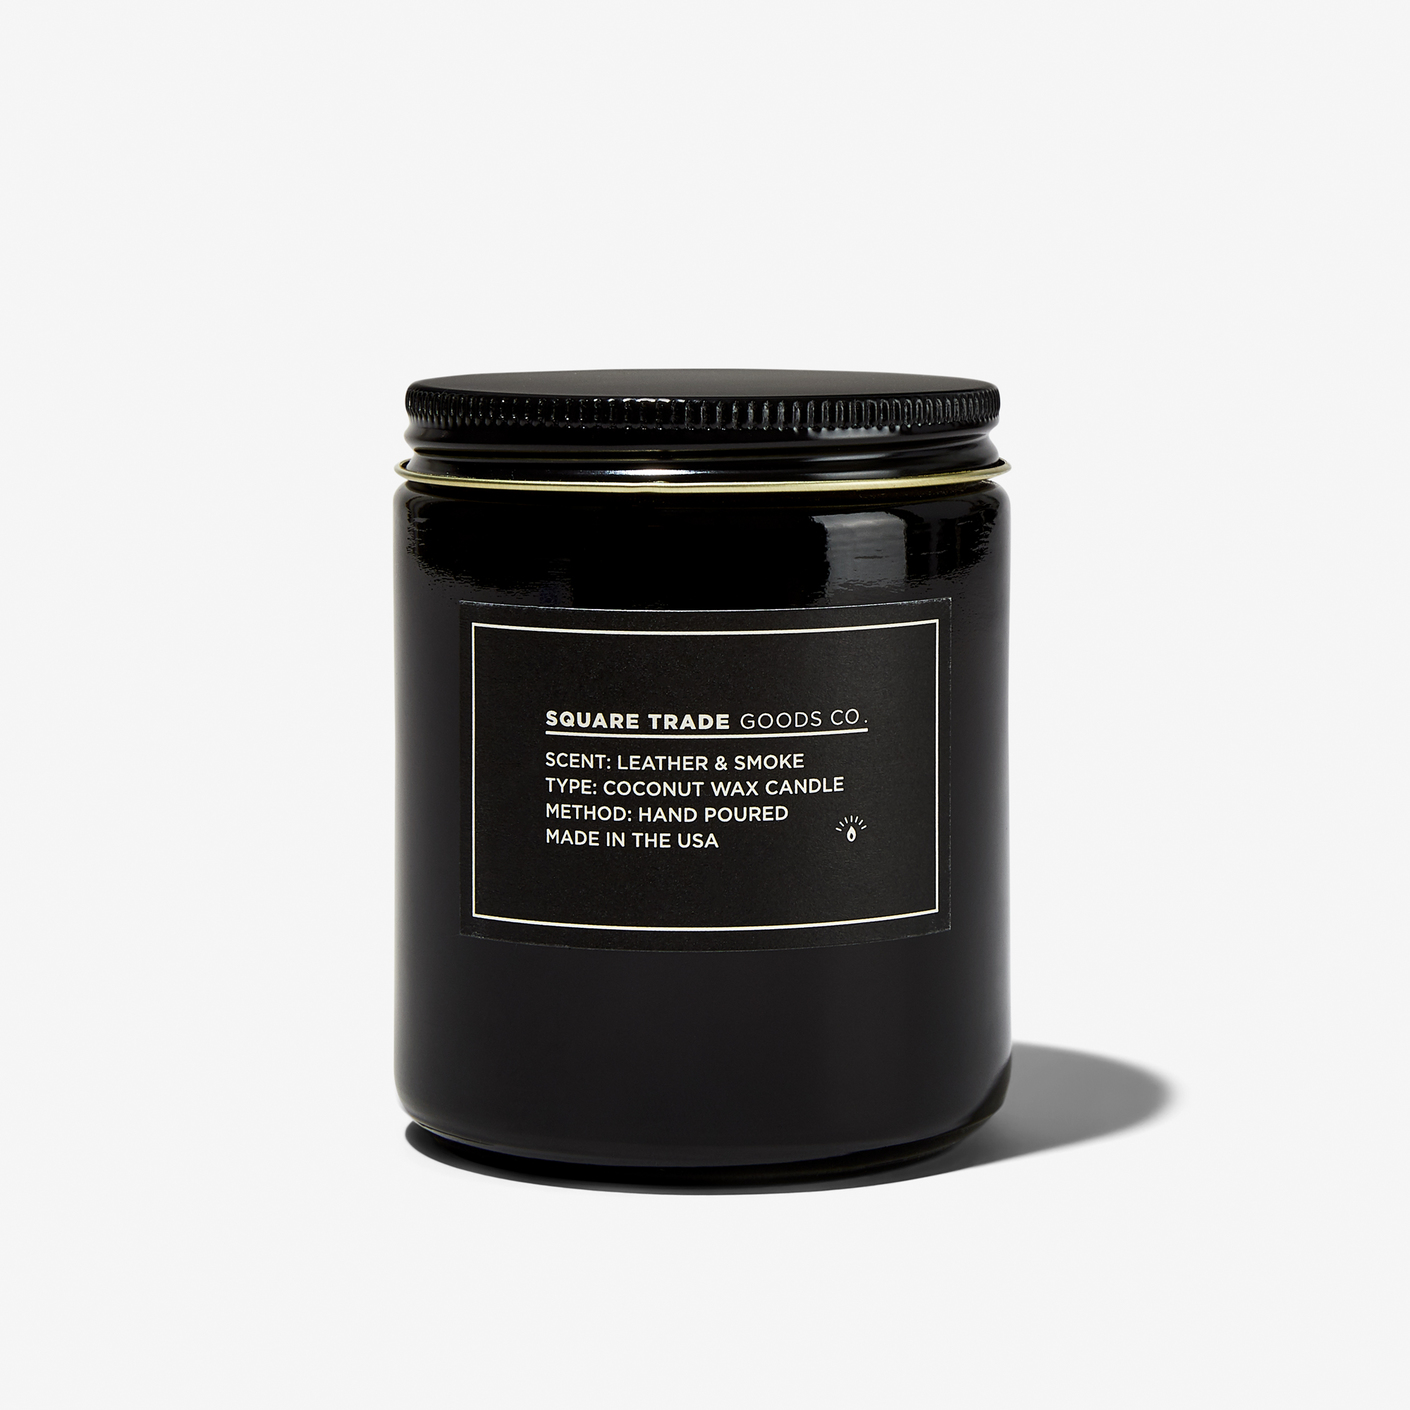 Square Trade Goods Co Leather Smoke Candle Bespoke Post